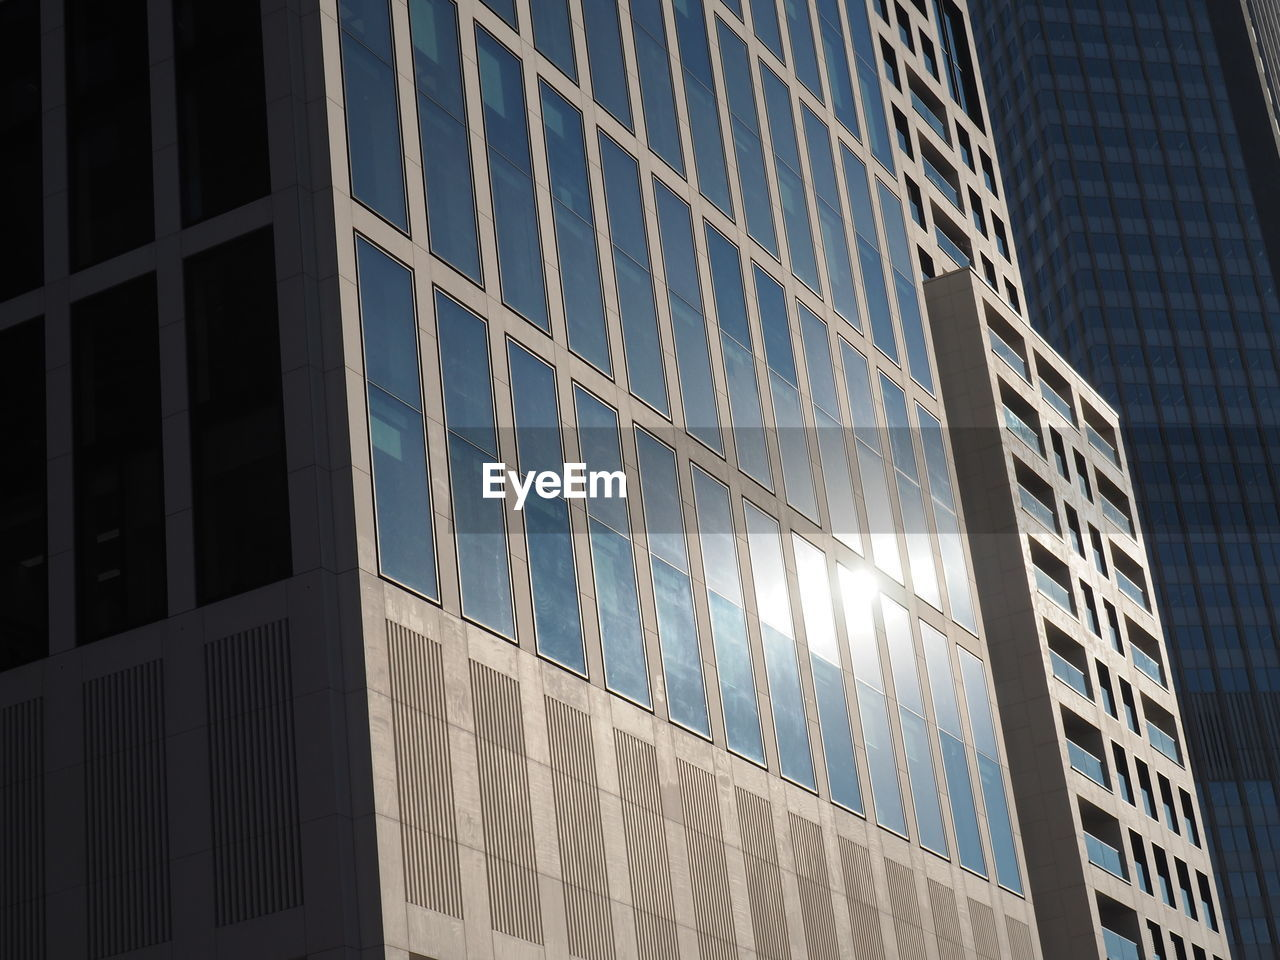 architecture, low angle view, window, built structure, modern, reflection, building exterior, day, no people, sunlight, corporate business, outdoors, skyscraper